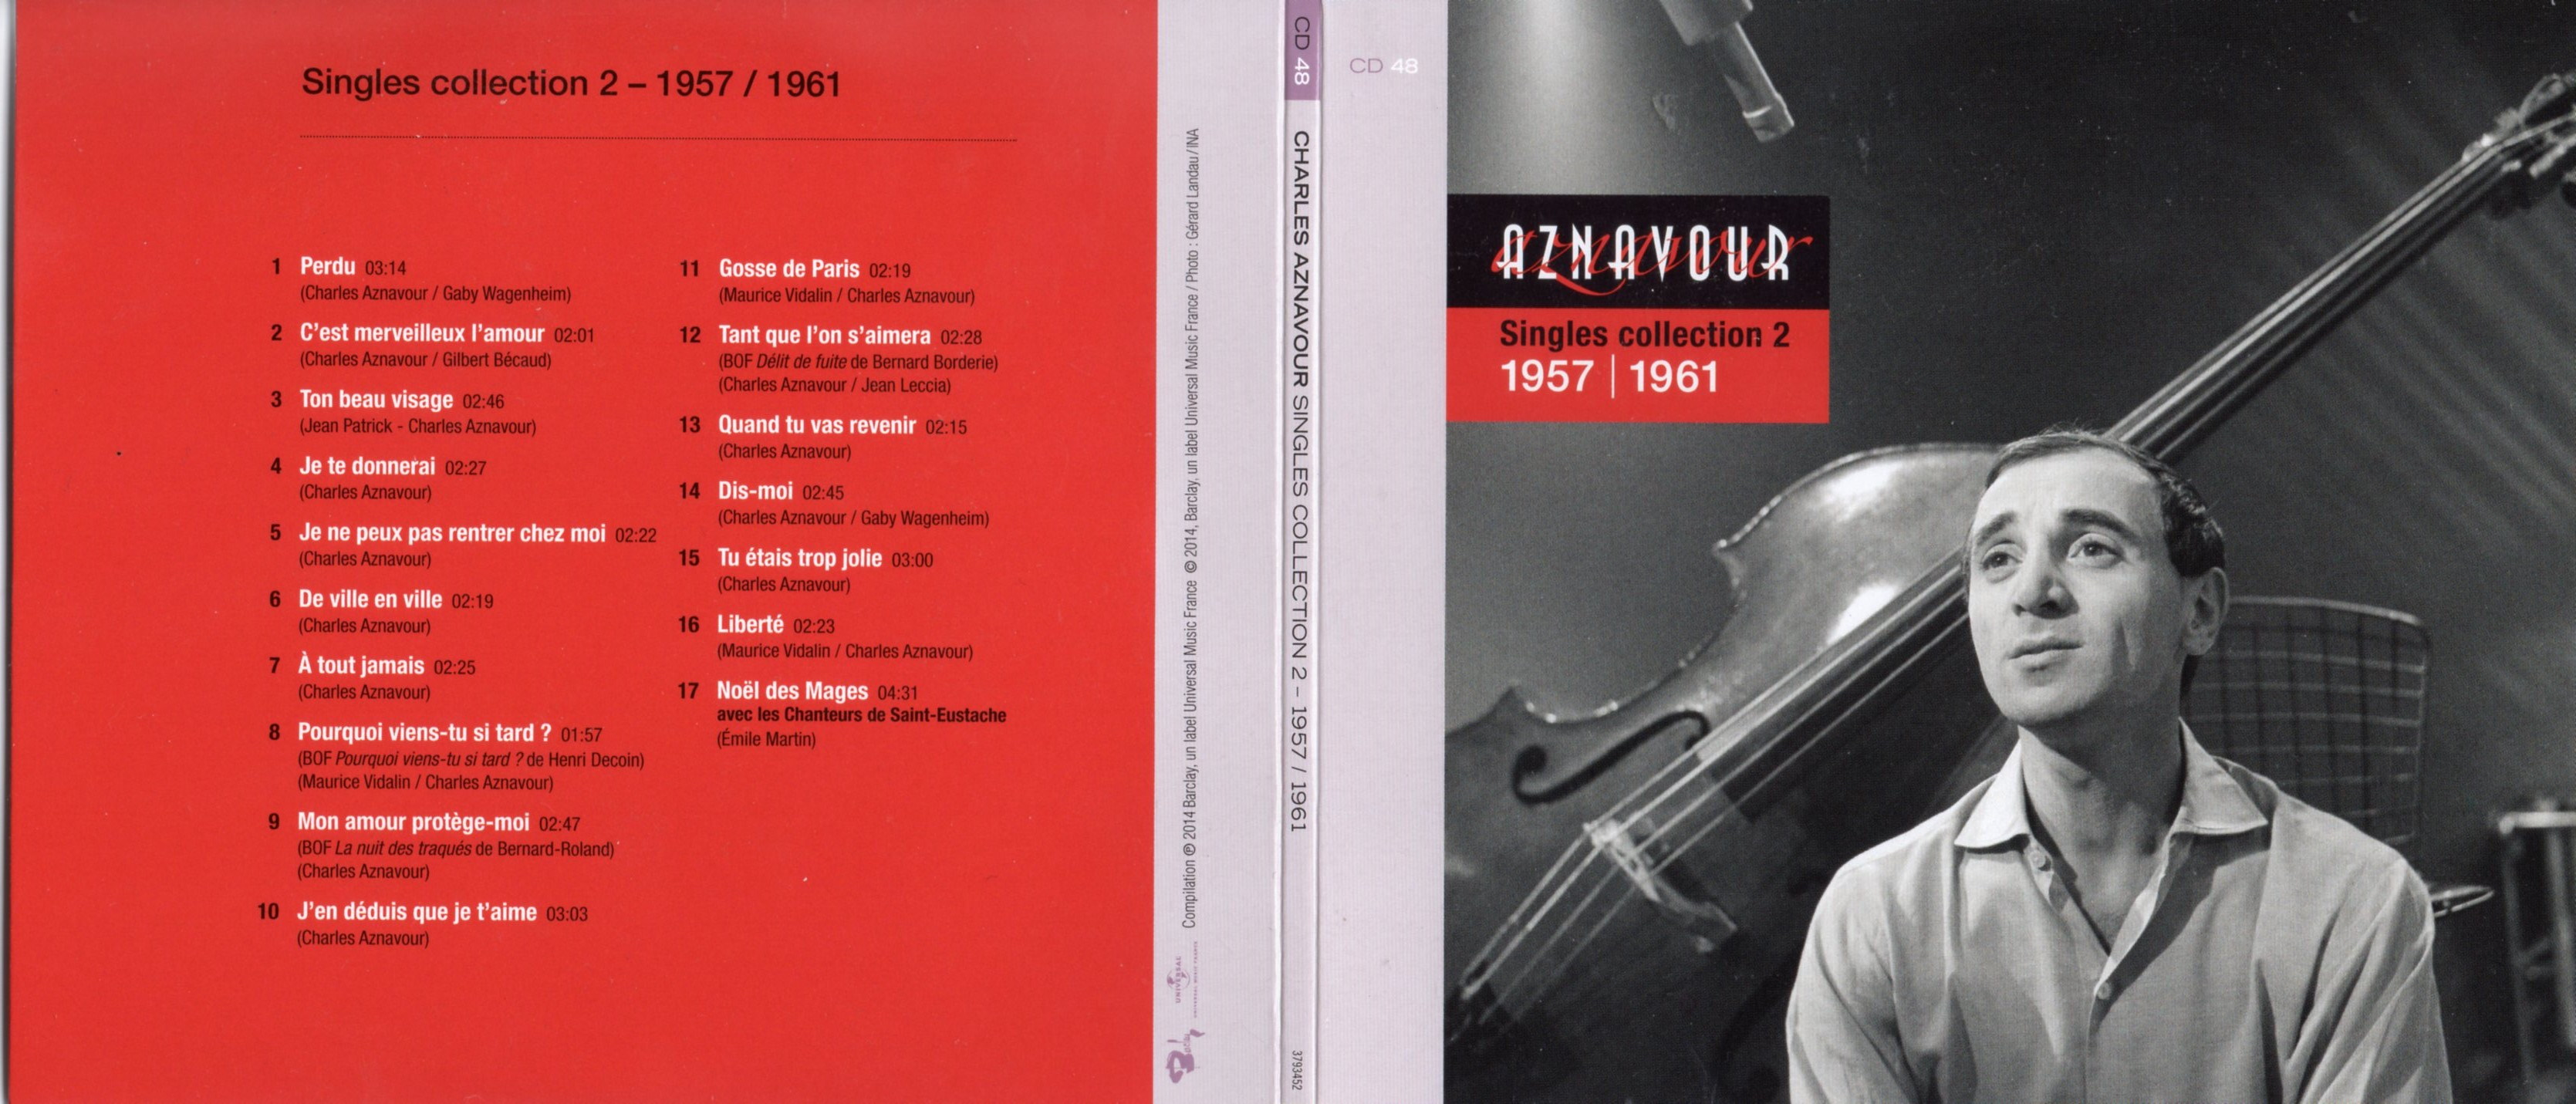 CHARLES AZNAVOUR - Singles Collection Vol 2 (1957 - 1958) Gatefold Card board sleeve - CD